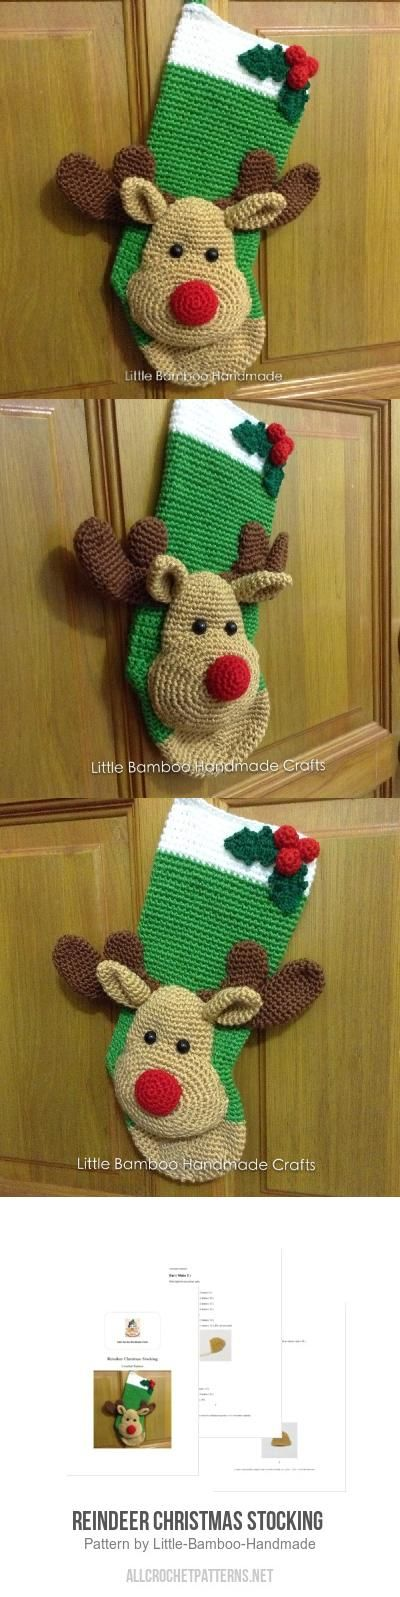 Reindeer Christmas Stocking  Crochet Pattern for purchase